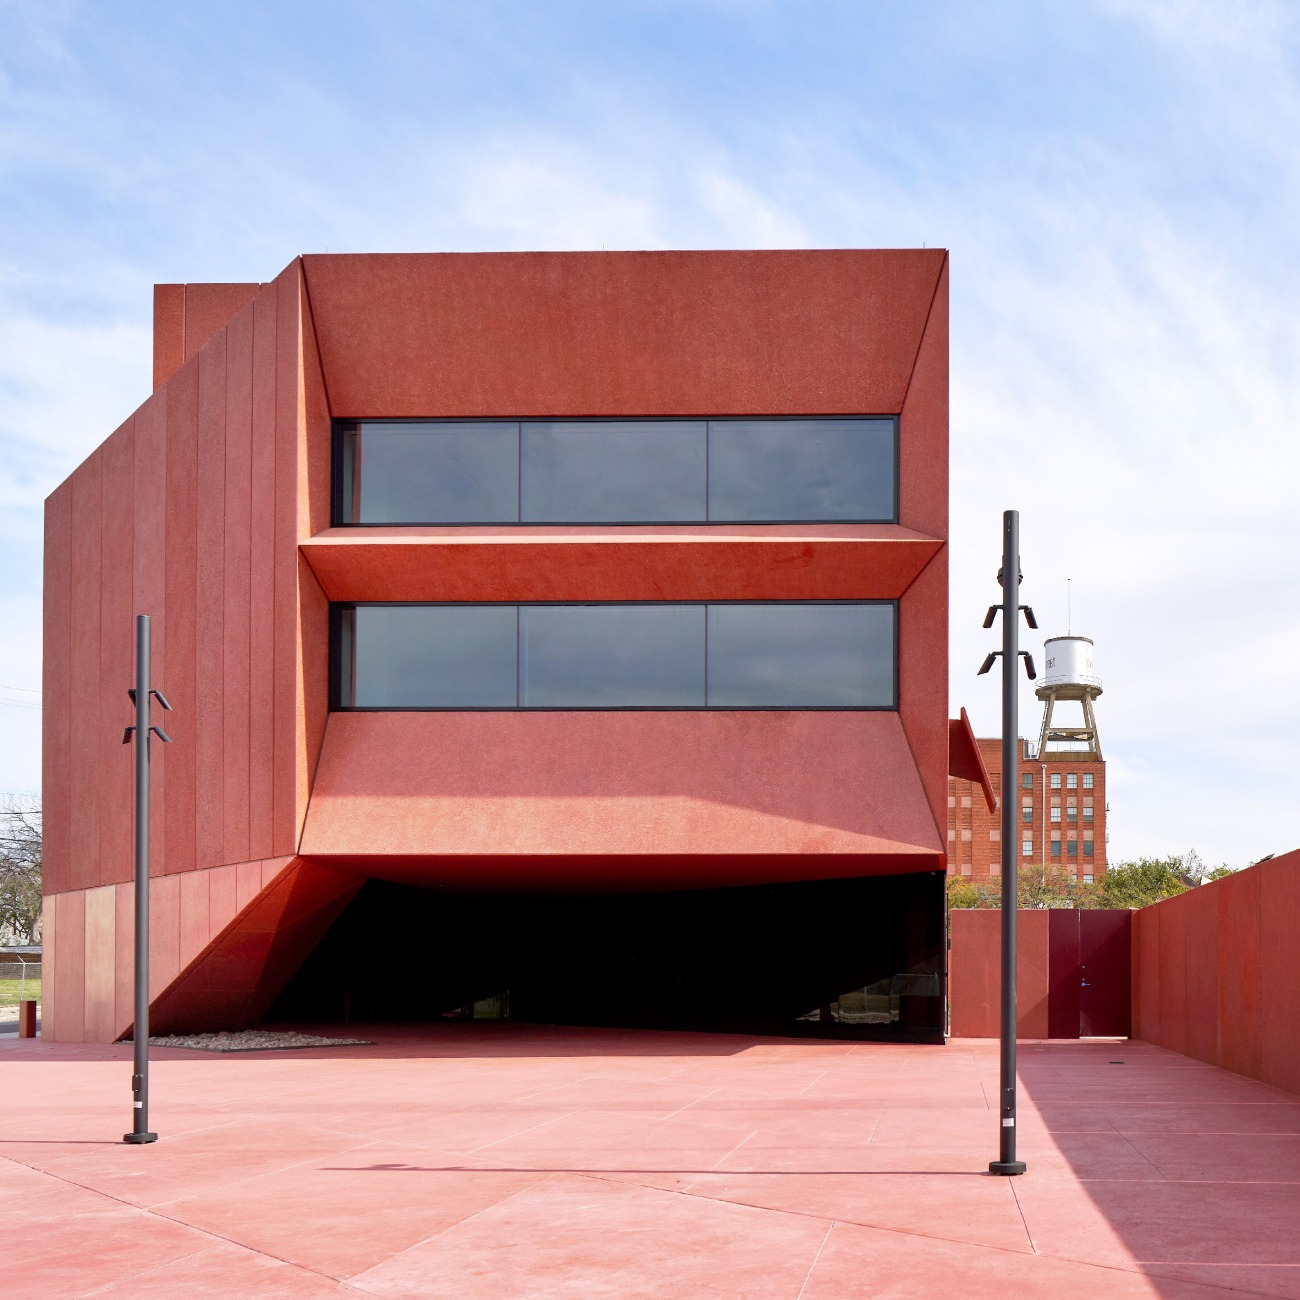 Ruby City, Texas, USA, by Adjaye Associates